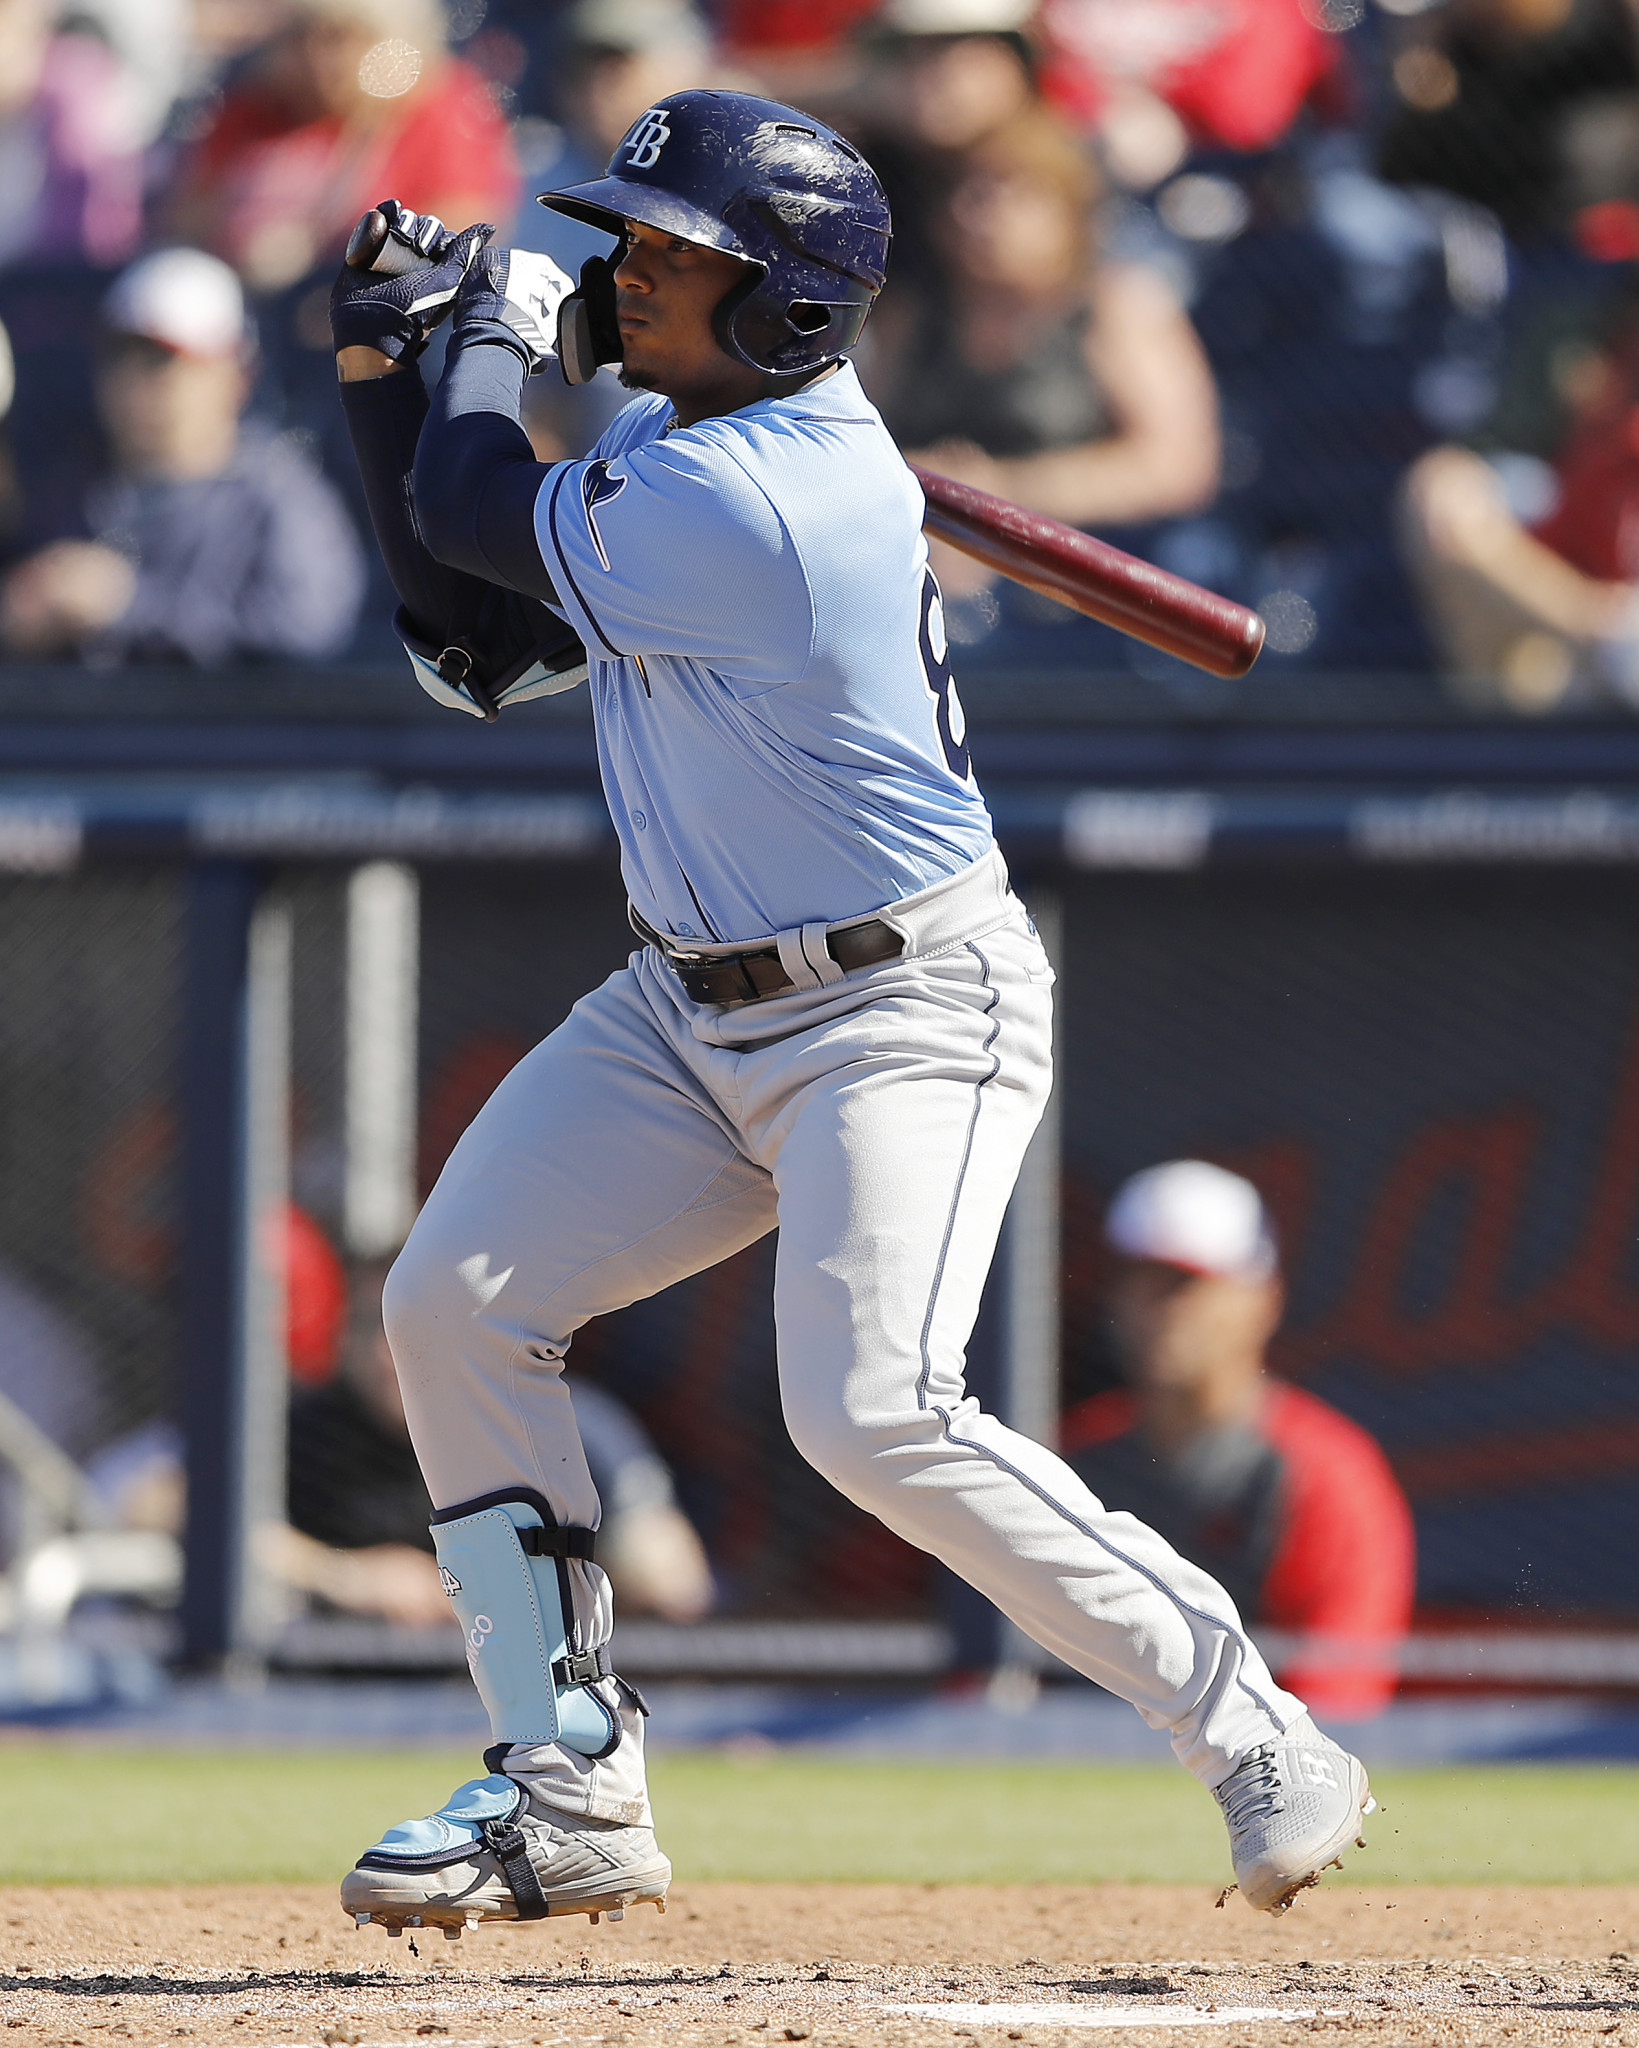 Wander Franco, the number one prospect in baseball according to MLB Pipeline, could play for the Dominican Republic in the qualifying tournament for this year's Olympic Games following the new agreement ©Getty Images